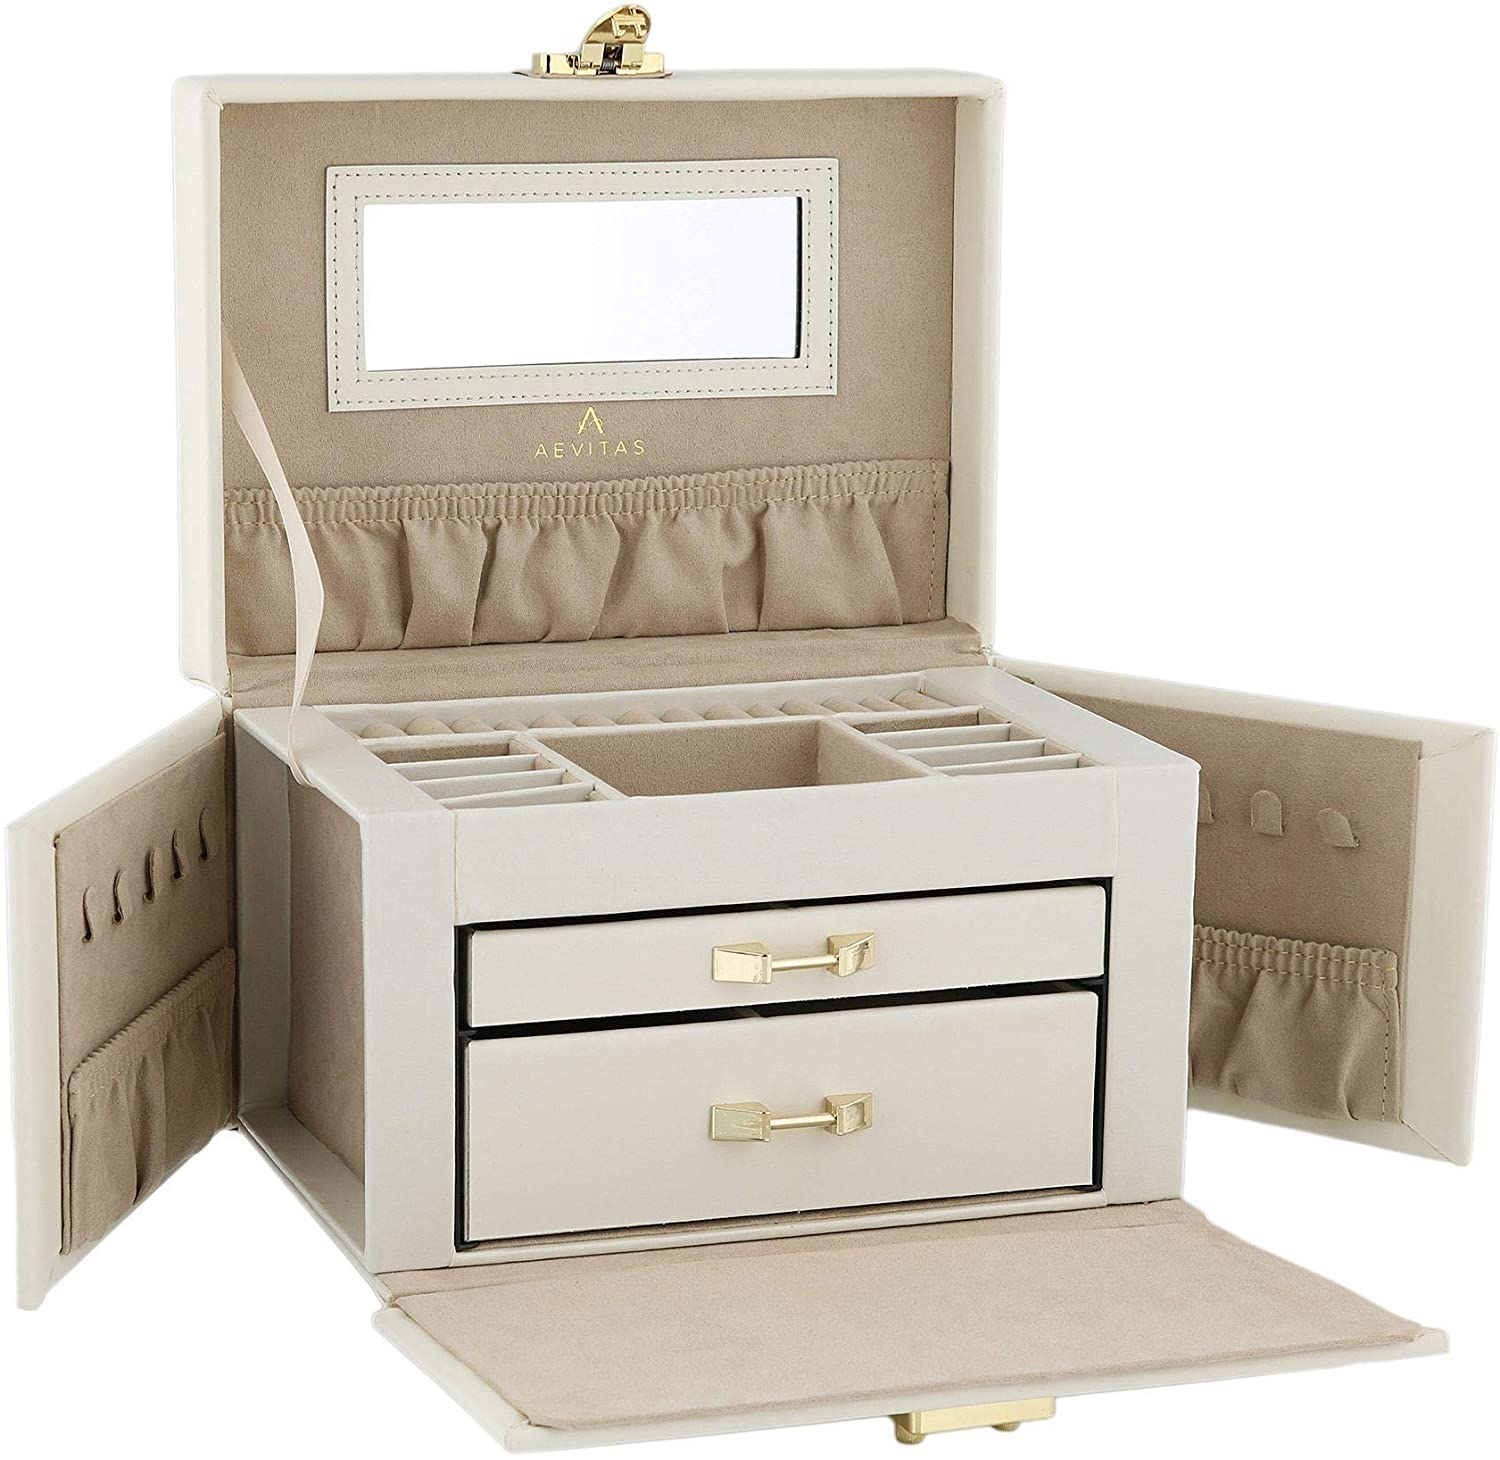 Aevitas Beautiful Quality Large Ivory Bonded Leather Jewelry Box with Traveler